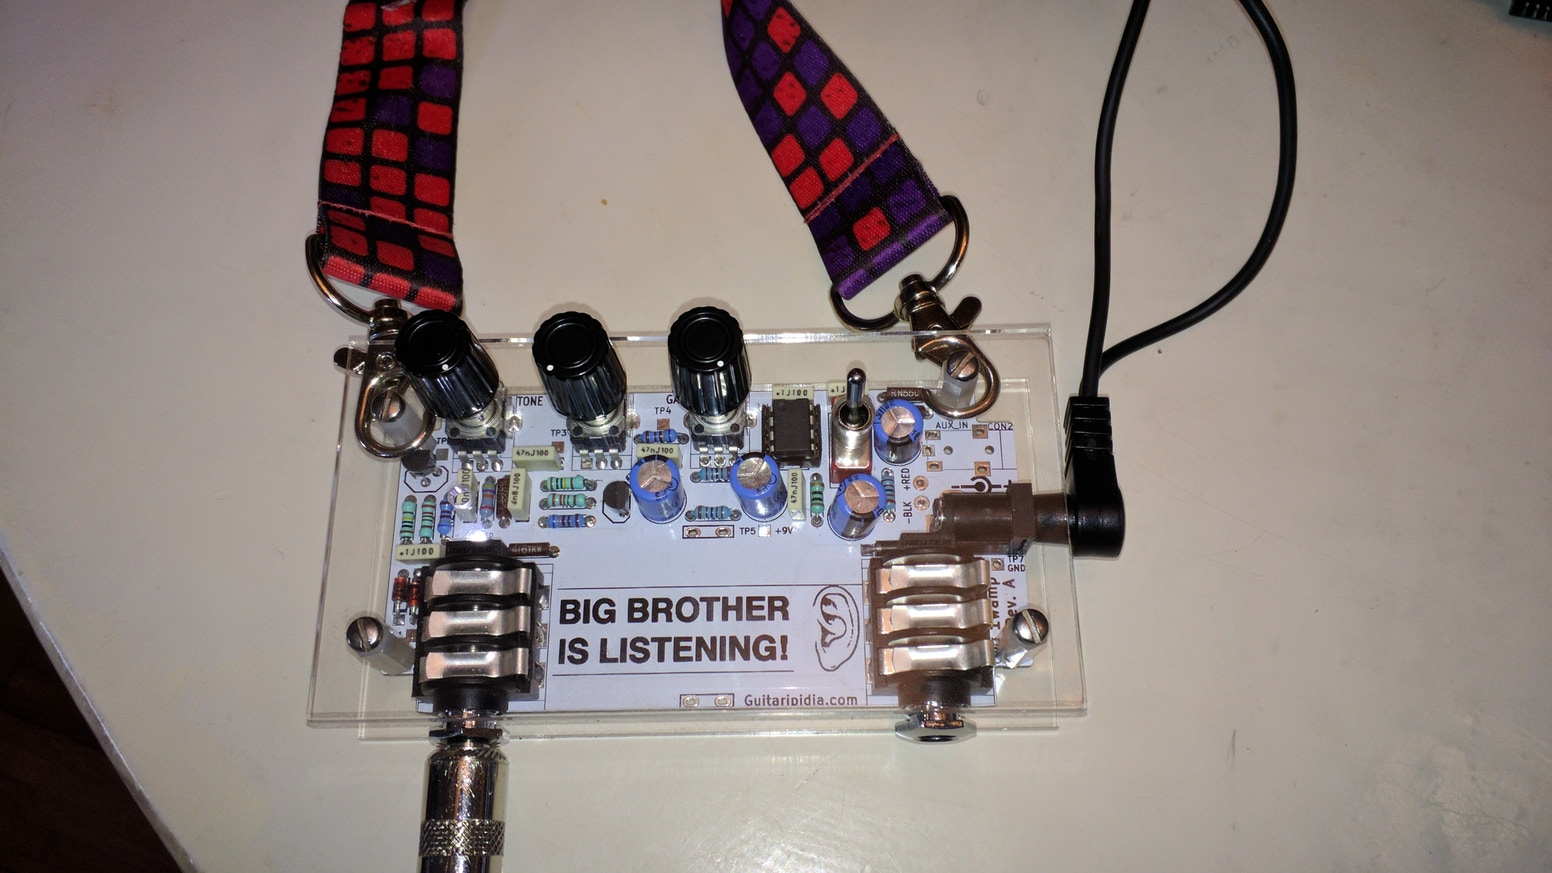 Defcon 26 indie badge DIY Audio amplifier kit 1983 themed by